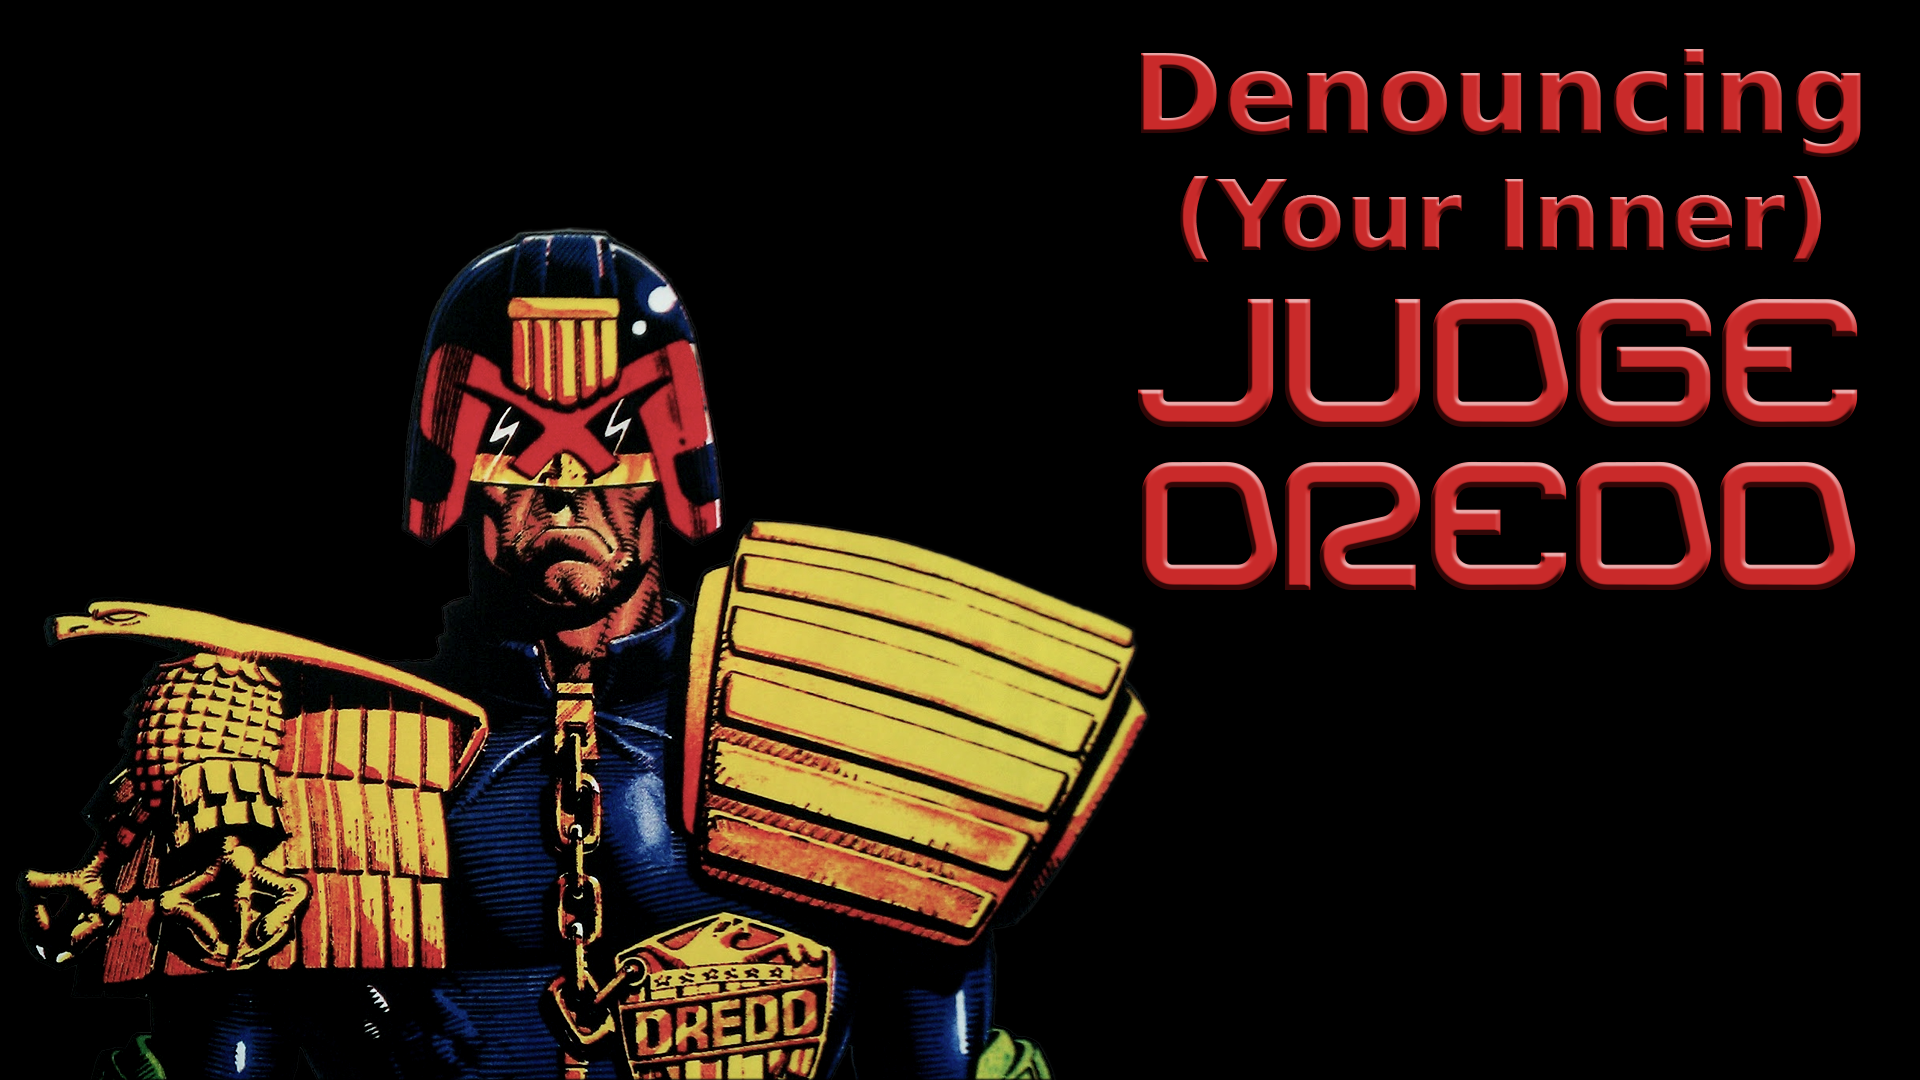 Denouncing Judge Dredd.png